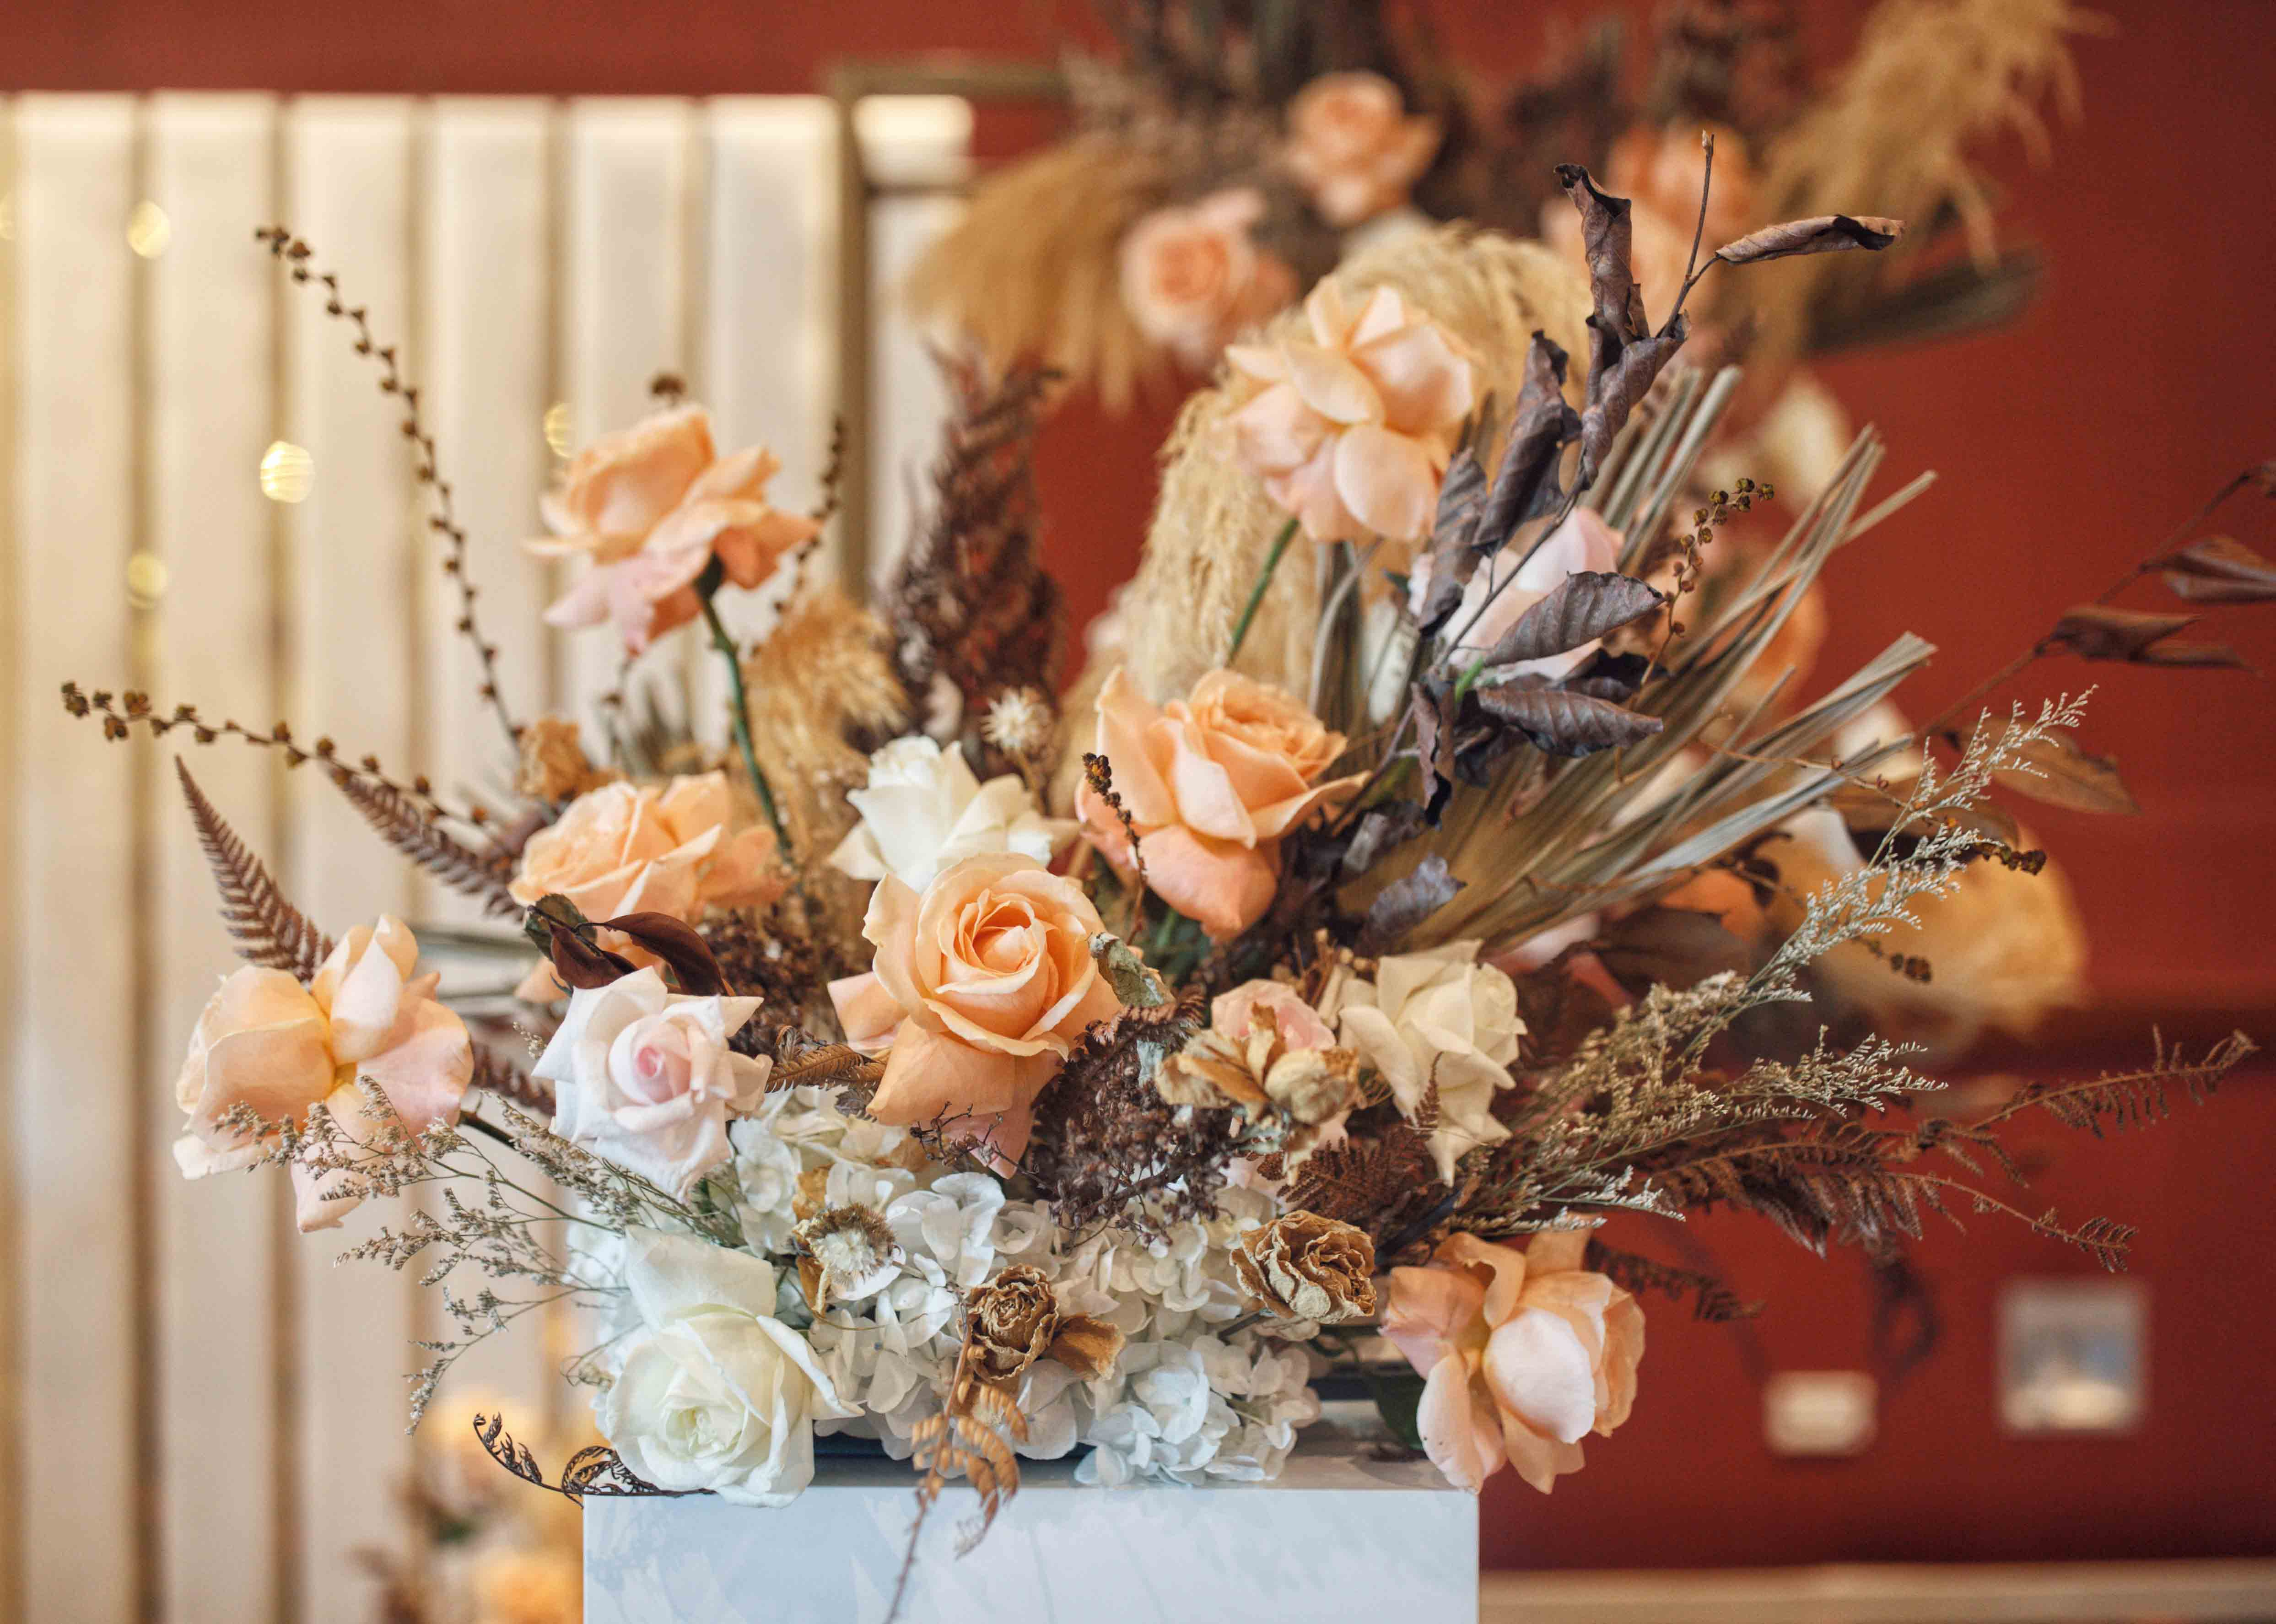 Styling and Hire by Luxe Dream / Florals by Luxe Dream Floral Studio